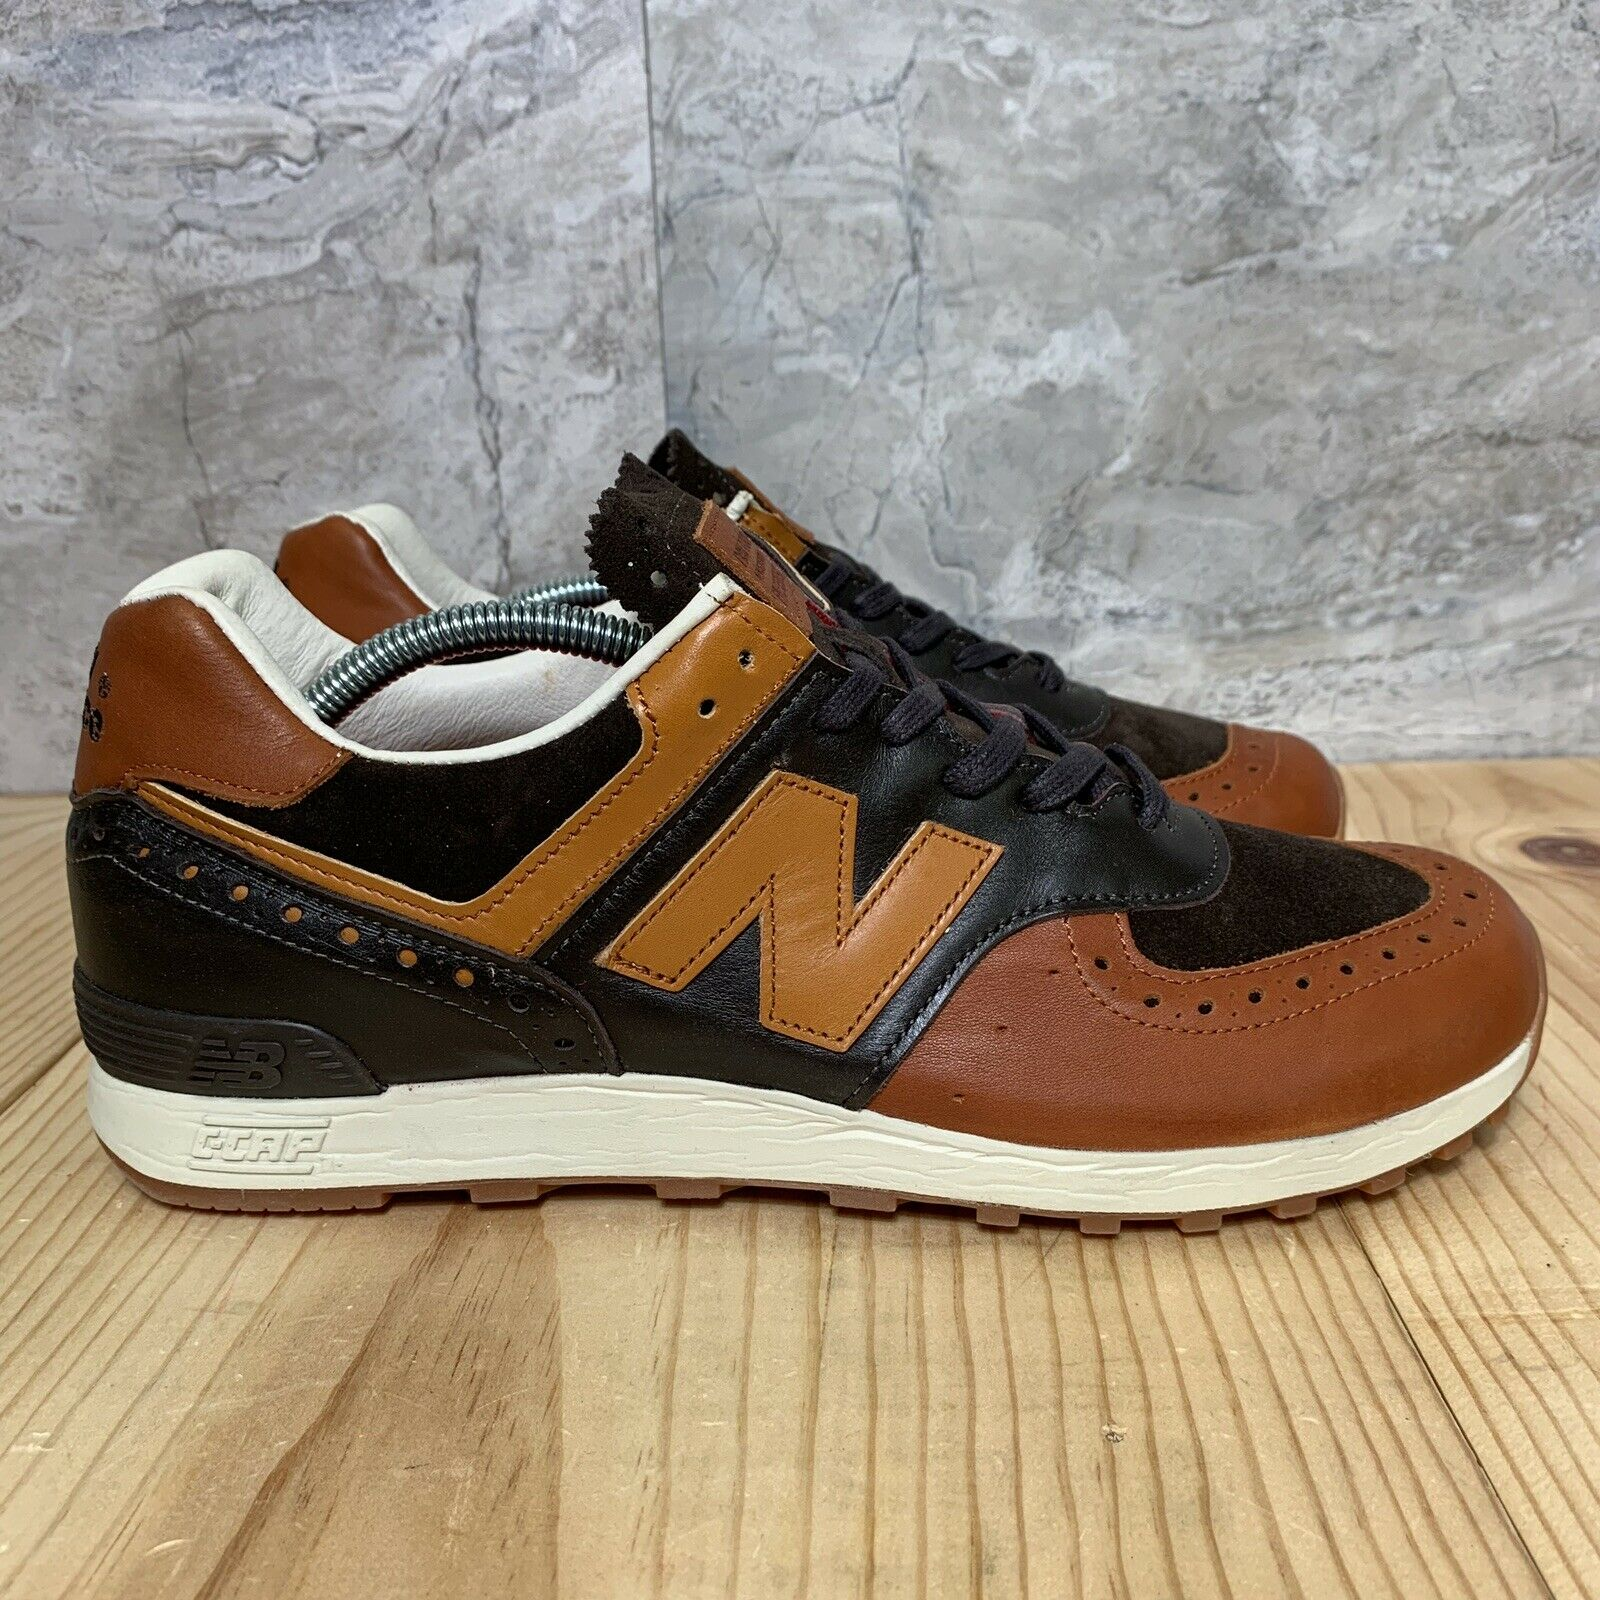 New Balance X Grenson M576GSN Size 10 Brown Leather Made In England Rare Phase 2